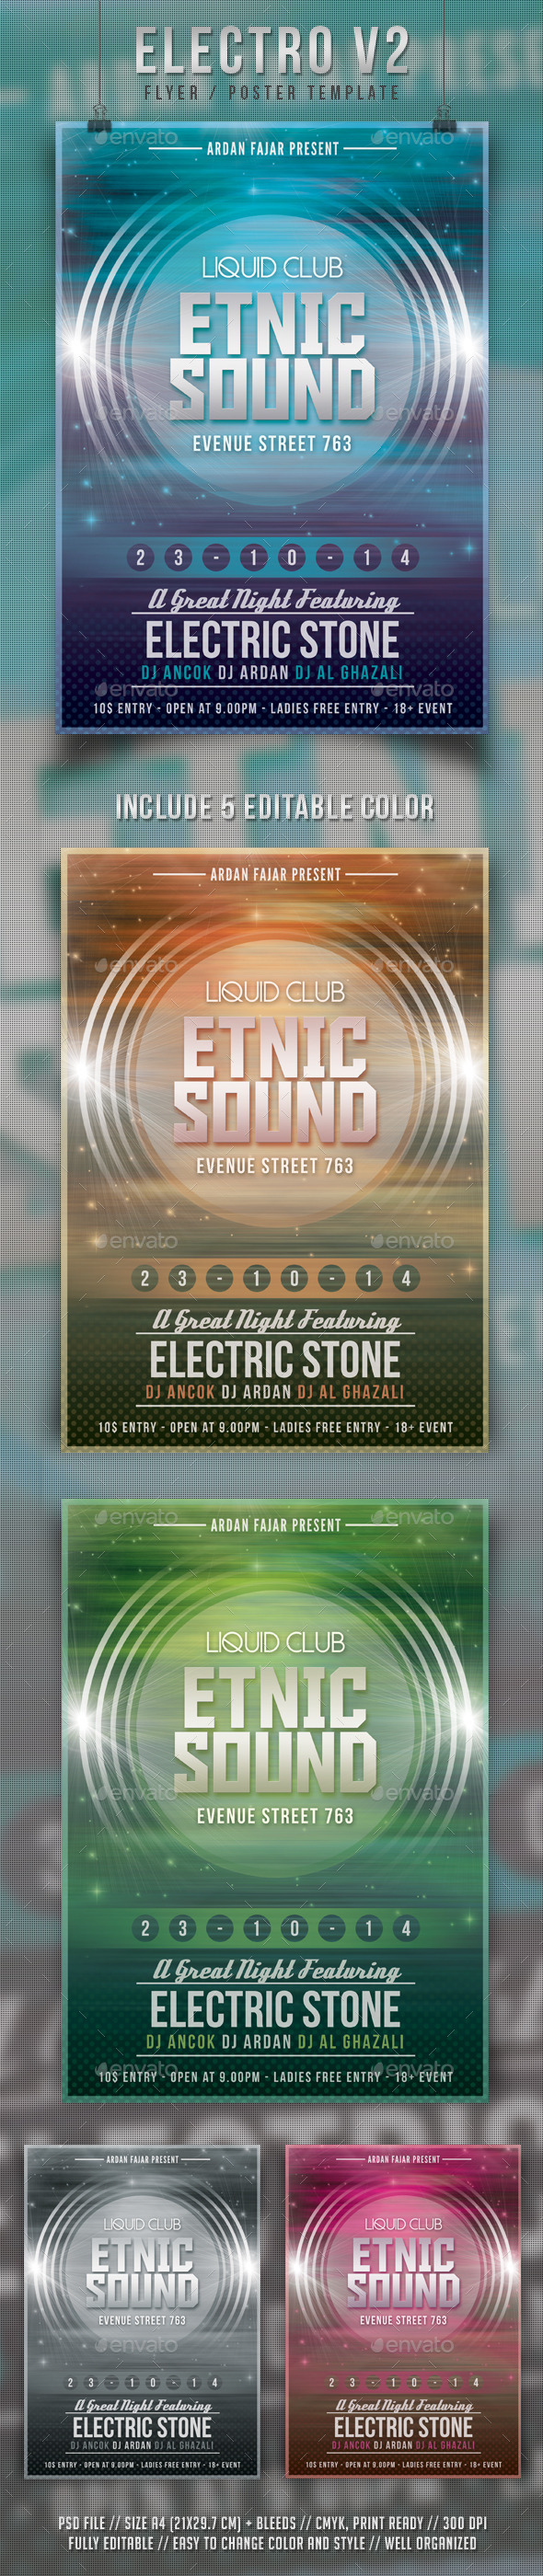 GraphicRiver Electro V2 Flyer Template 9174948